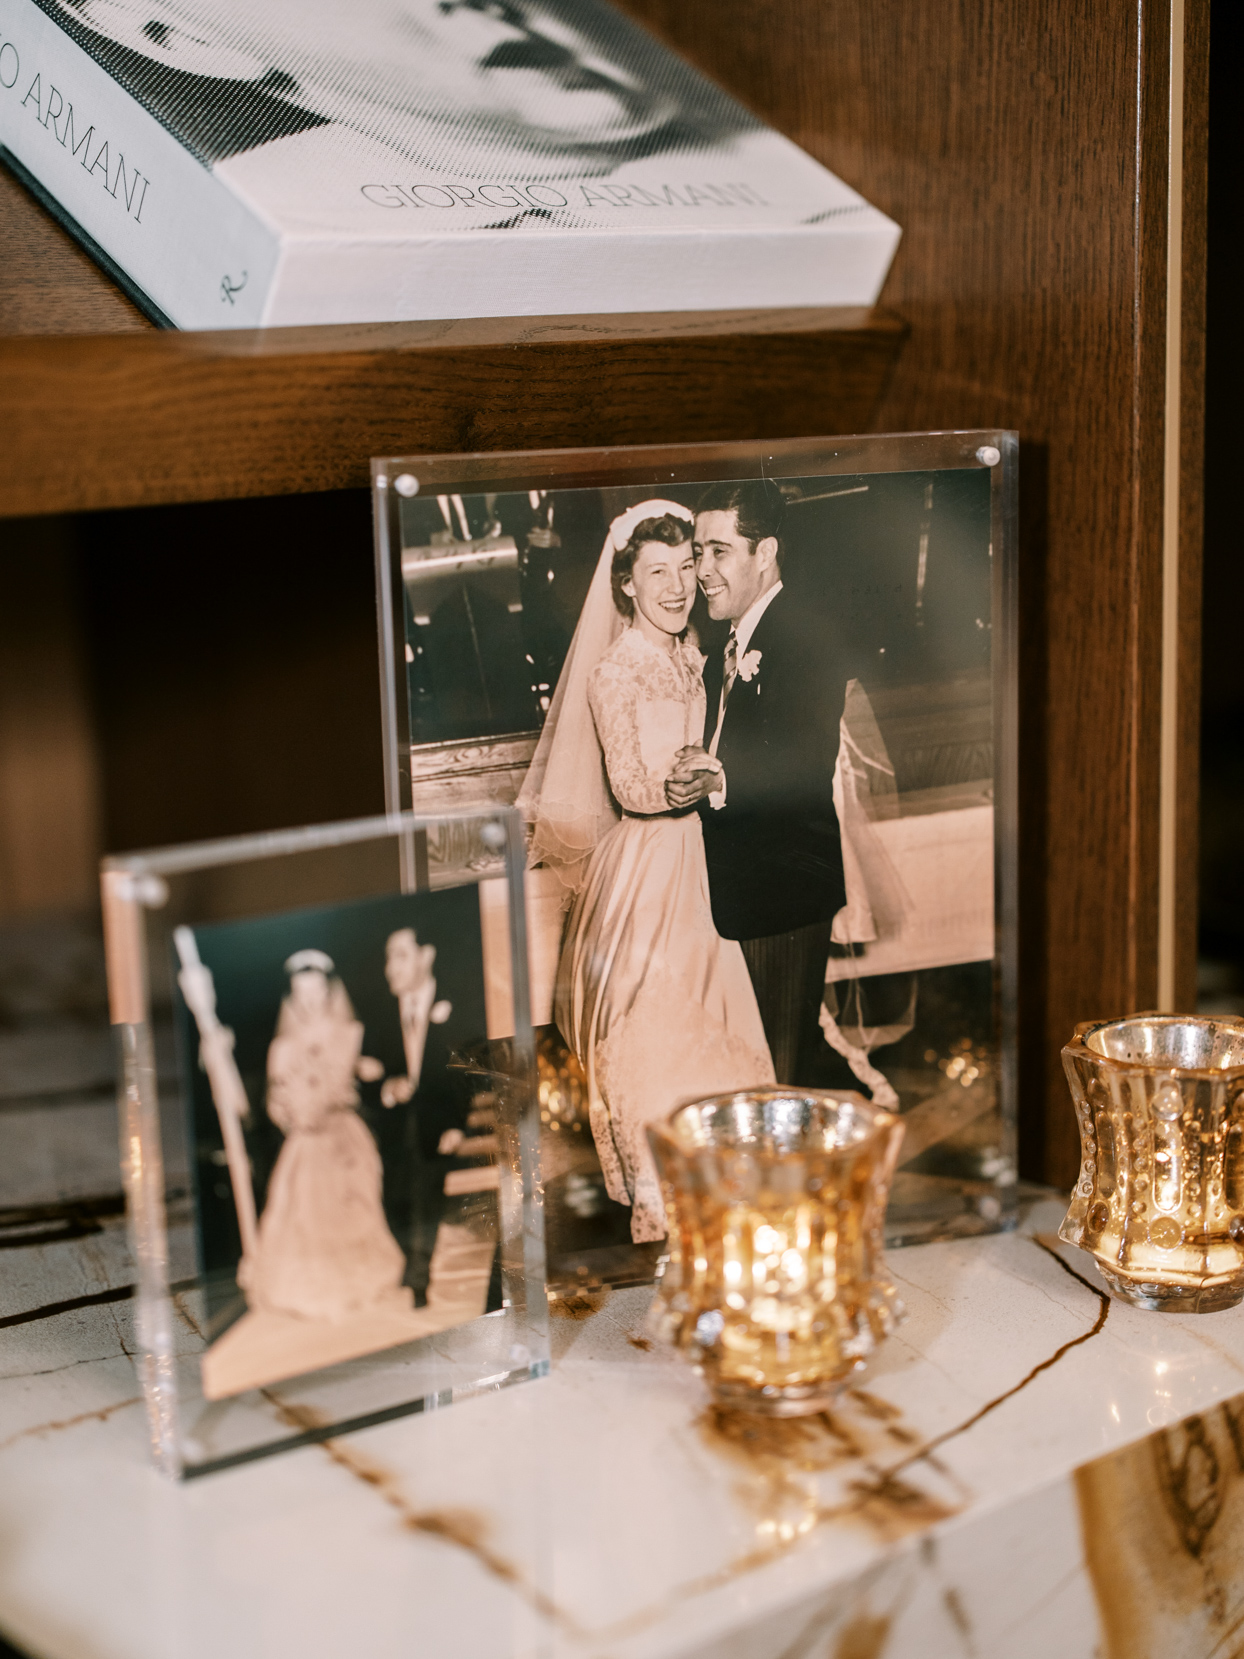 vintage wedding photos of relative with candles